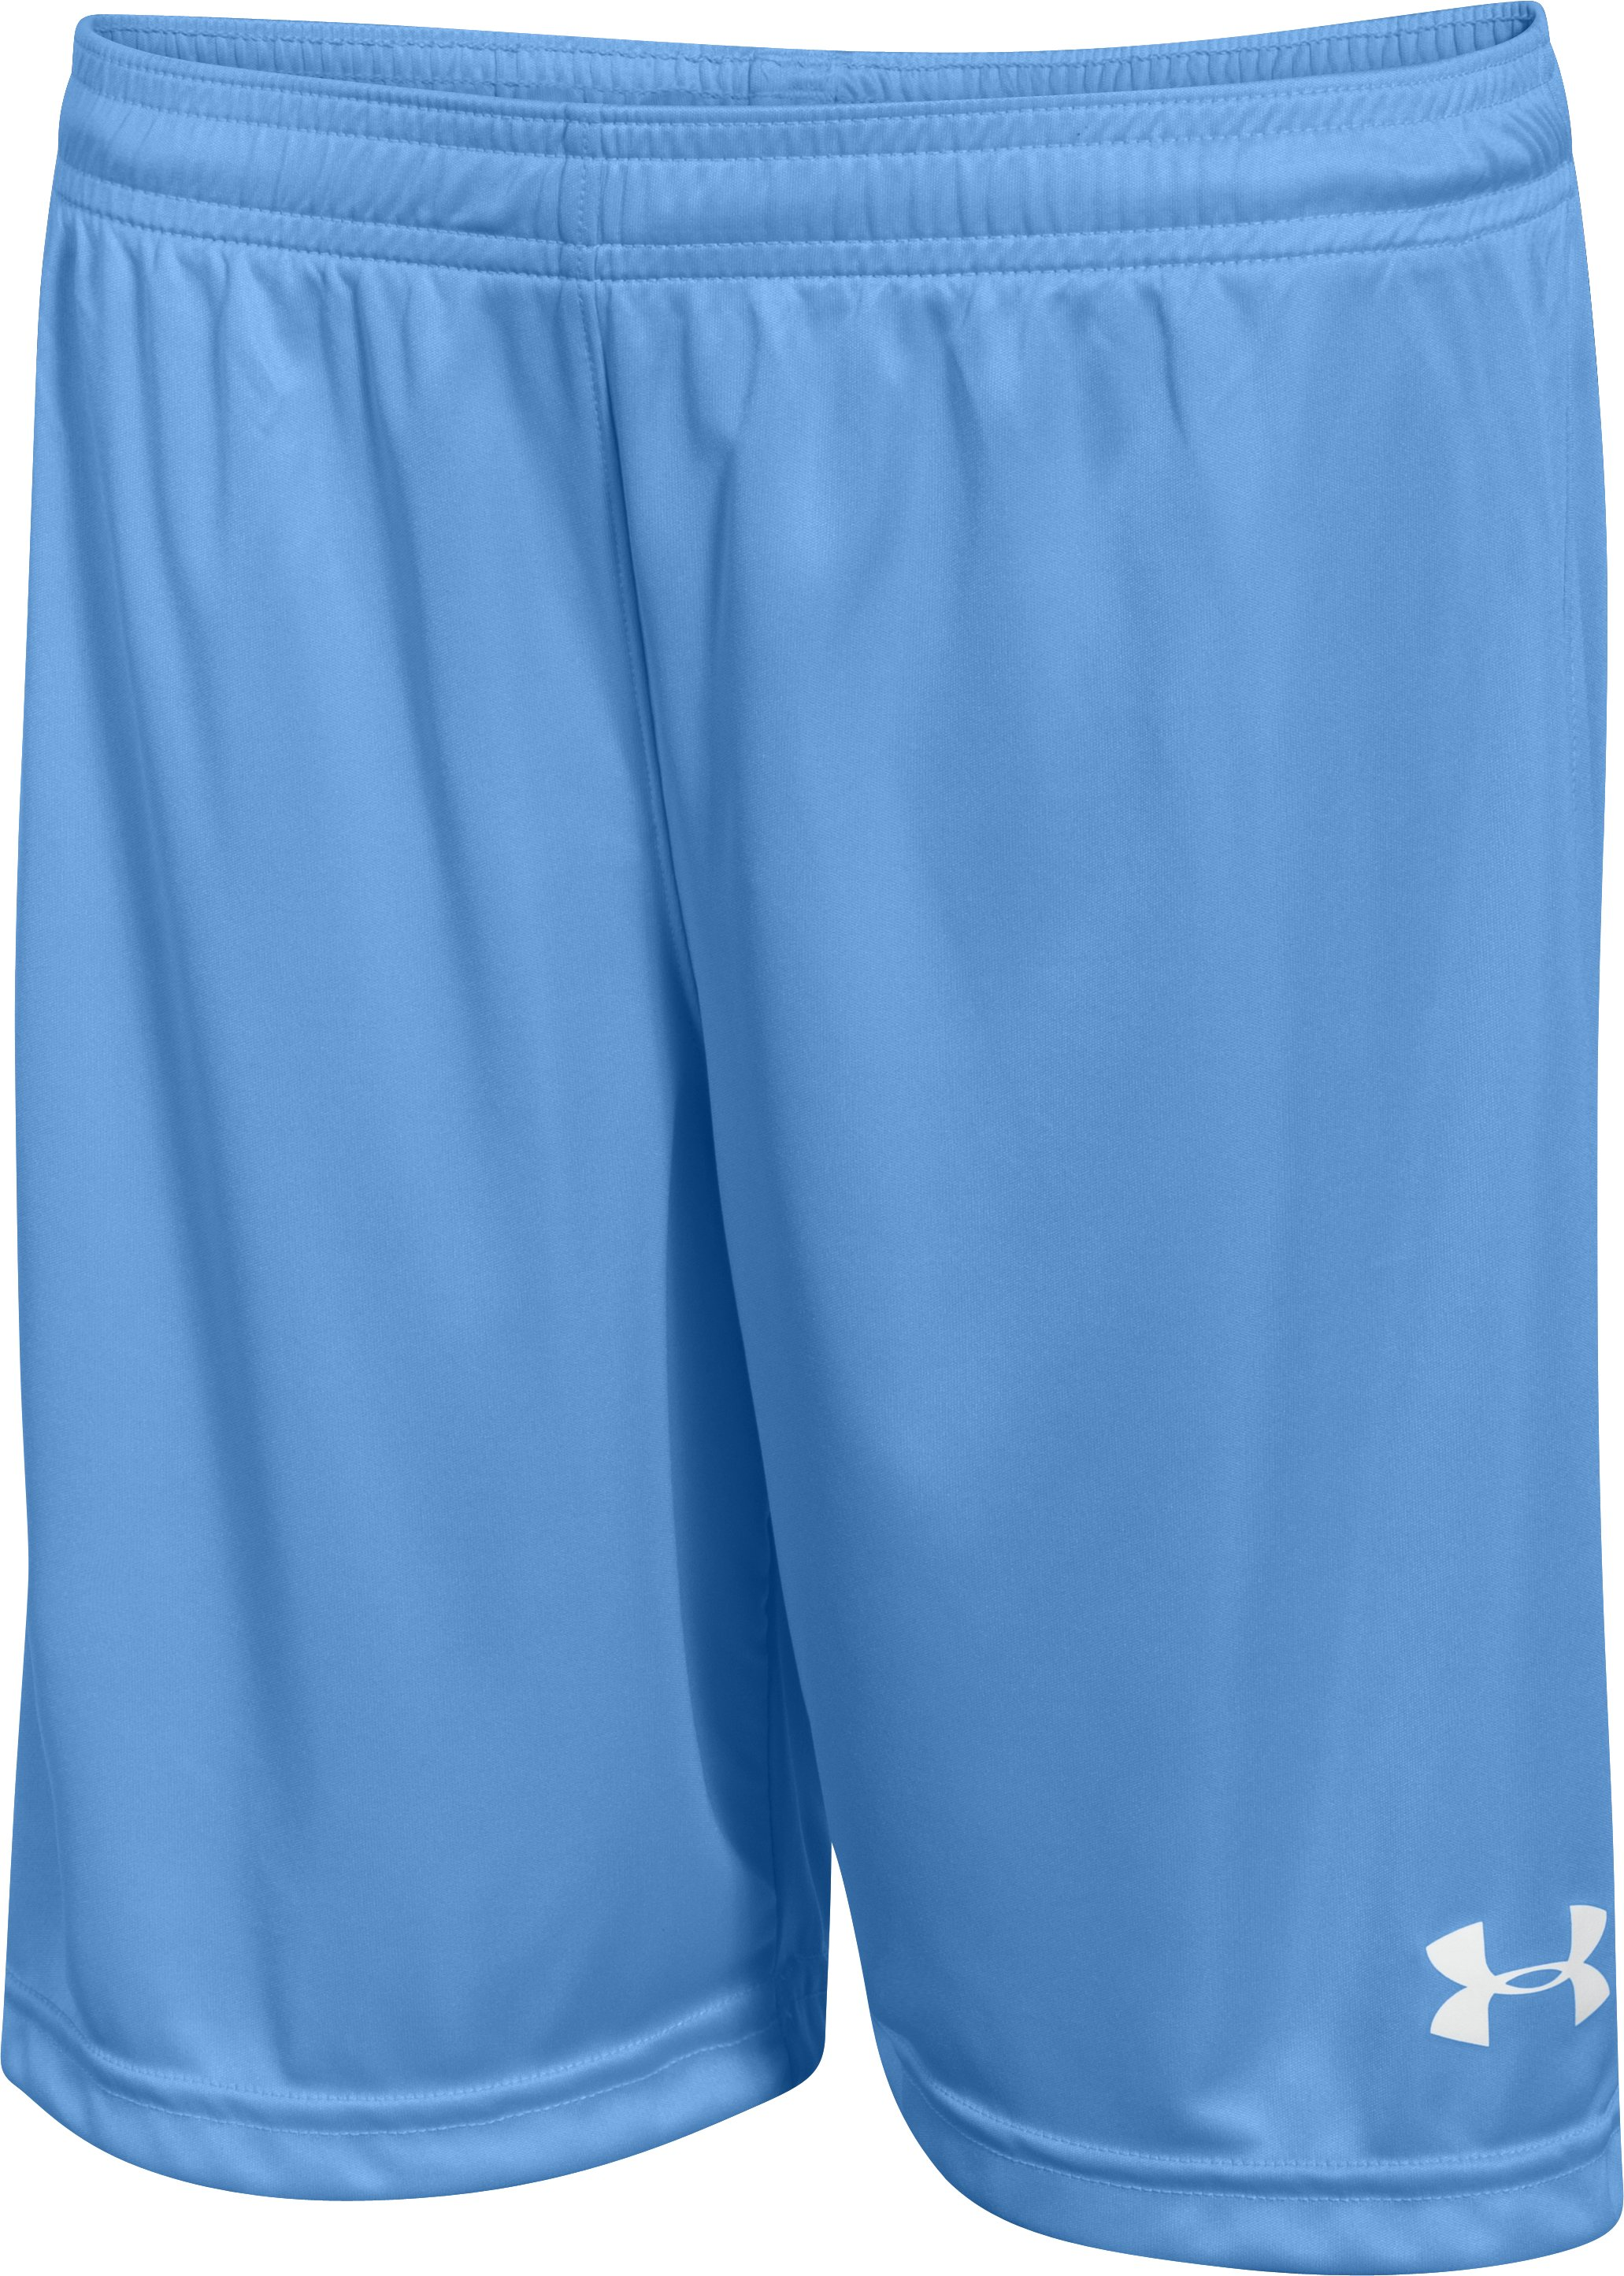 "Boys' UA Chaos 7"" Soccer Shorts, Carolina Blue,"